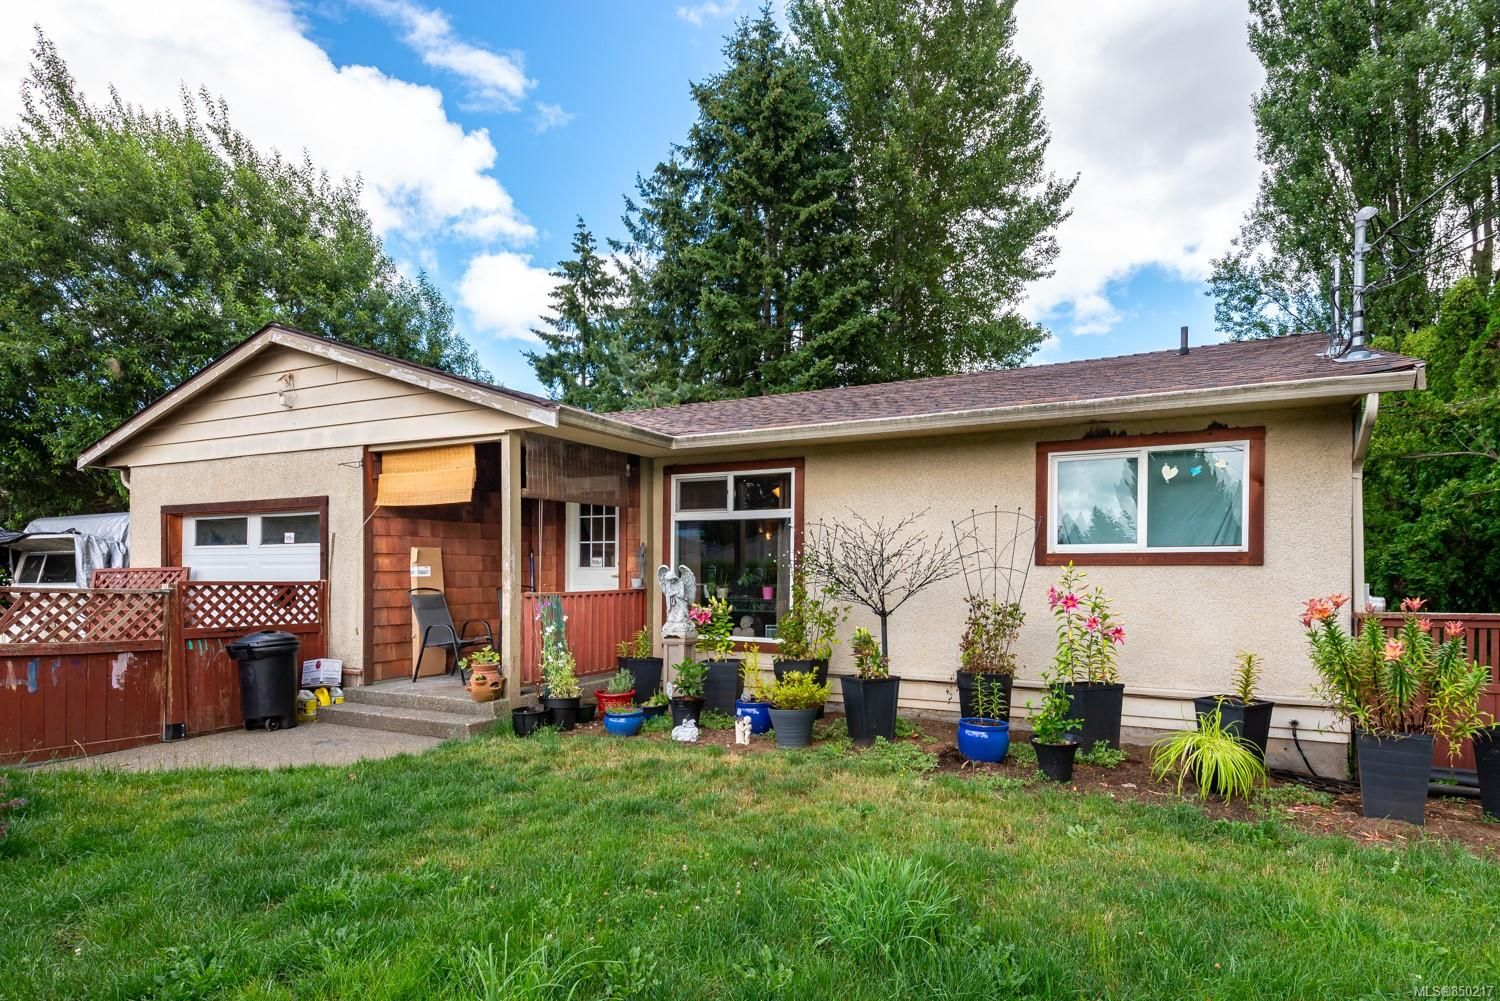 Main Photo: 1750 Willemar Ave in : CV Courtenay City House for sale (Comox Valley)  : MLS®# 850217